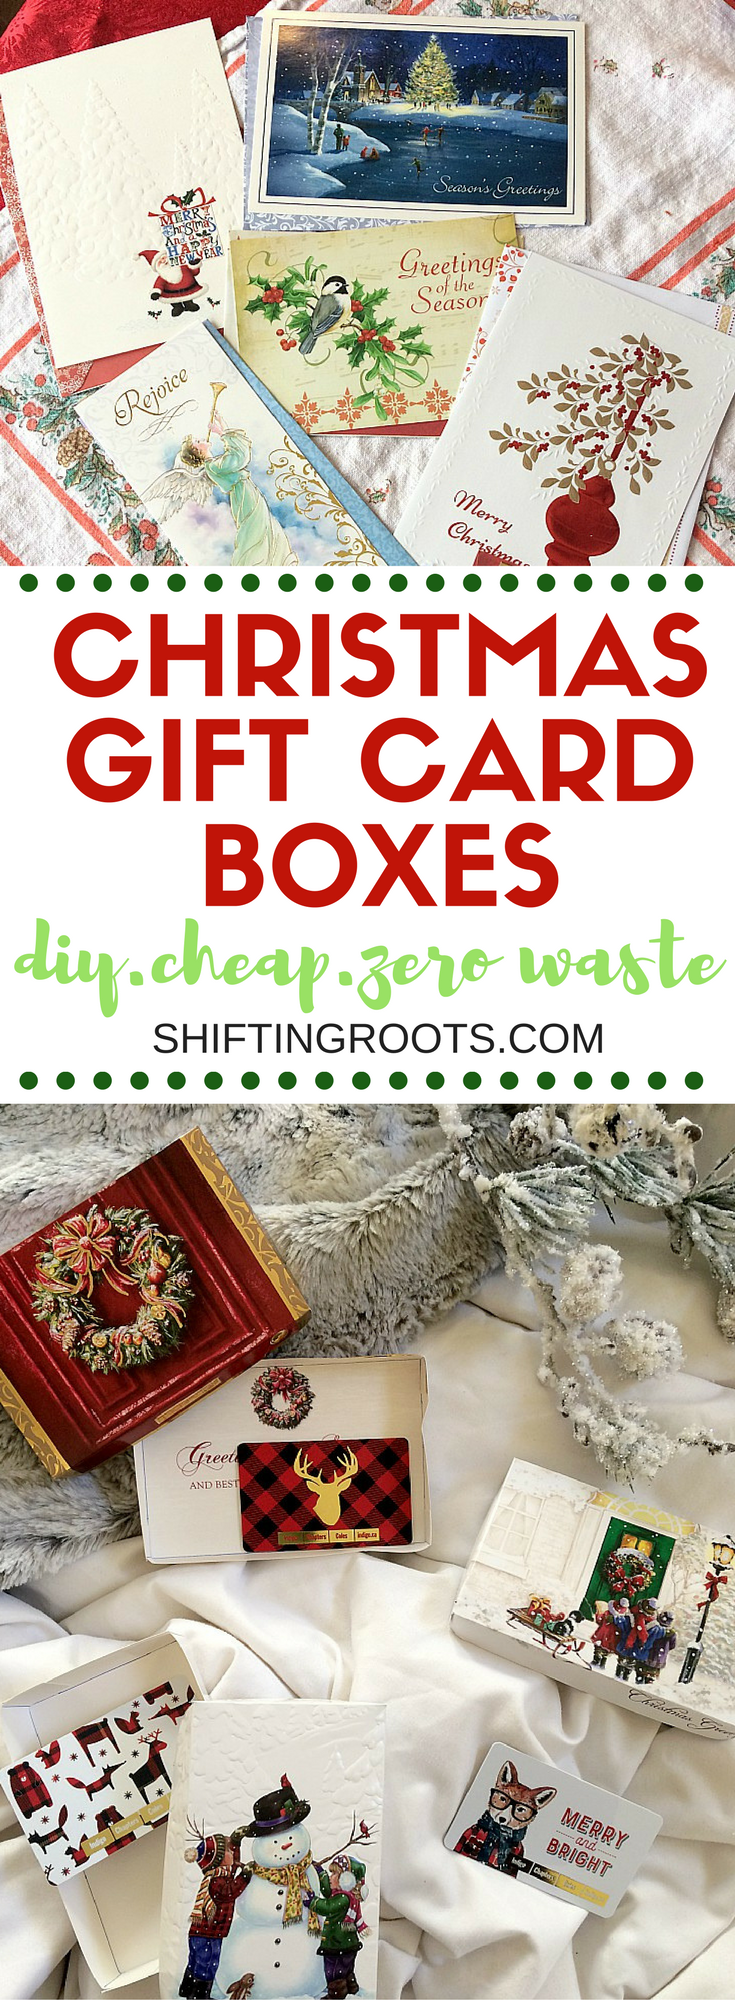 Learn how to make DIY Christmas gift boxes on a budget.  This fun craft is the perfect packaging for your stocking stuffers and gift cards--especially the teacher appreciation ones, (hint hint)!  Make as many as you want for the holidays!  It's budget friendly, zero waste, and really easy! #christmas #holiday #christmasdiy #holidaydiy #teachergift #giftcardholder #tutorial #stepbystep #crafting #giftcard